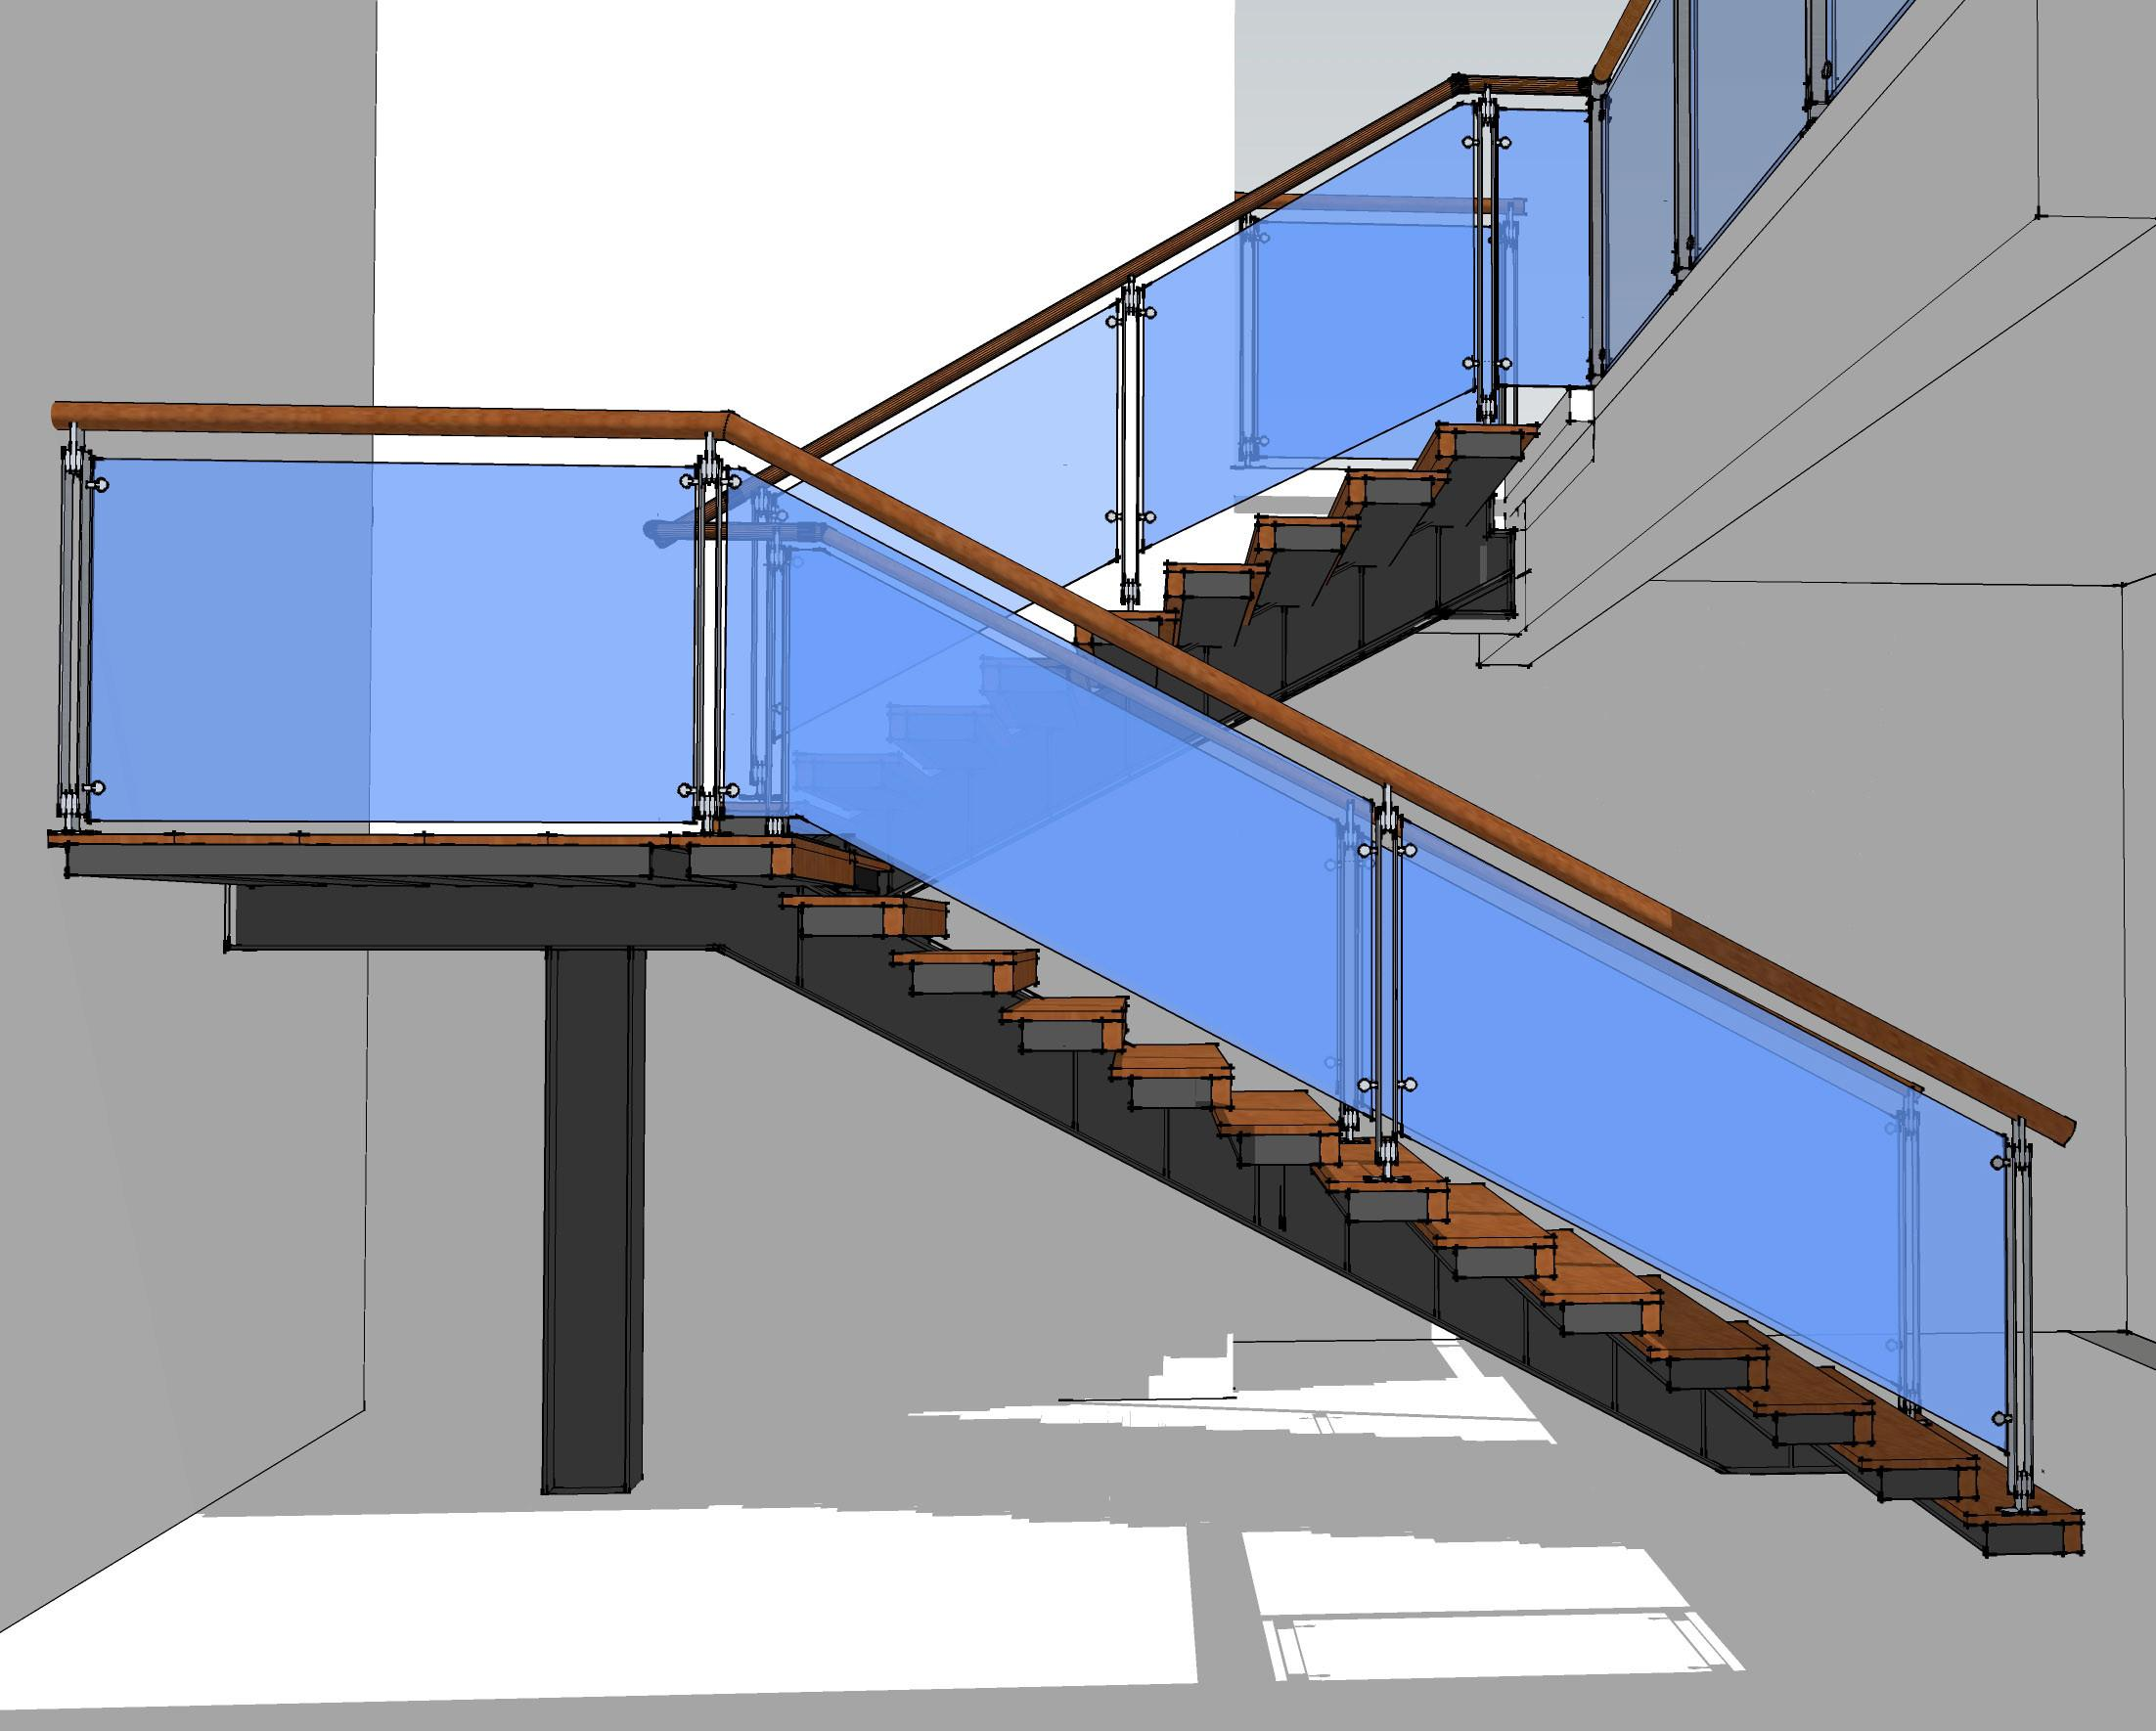 Steel Stair Eugene Mangubat Associates